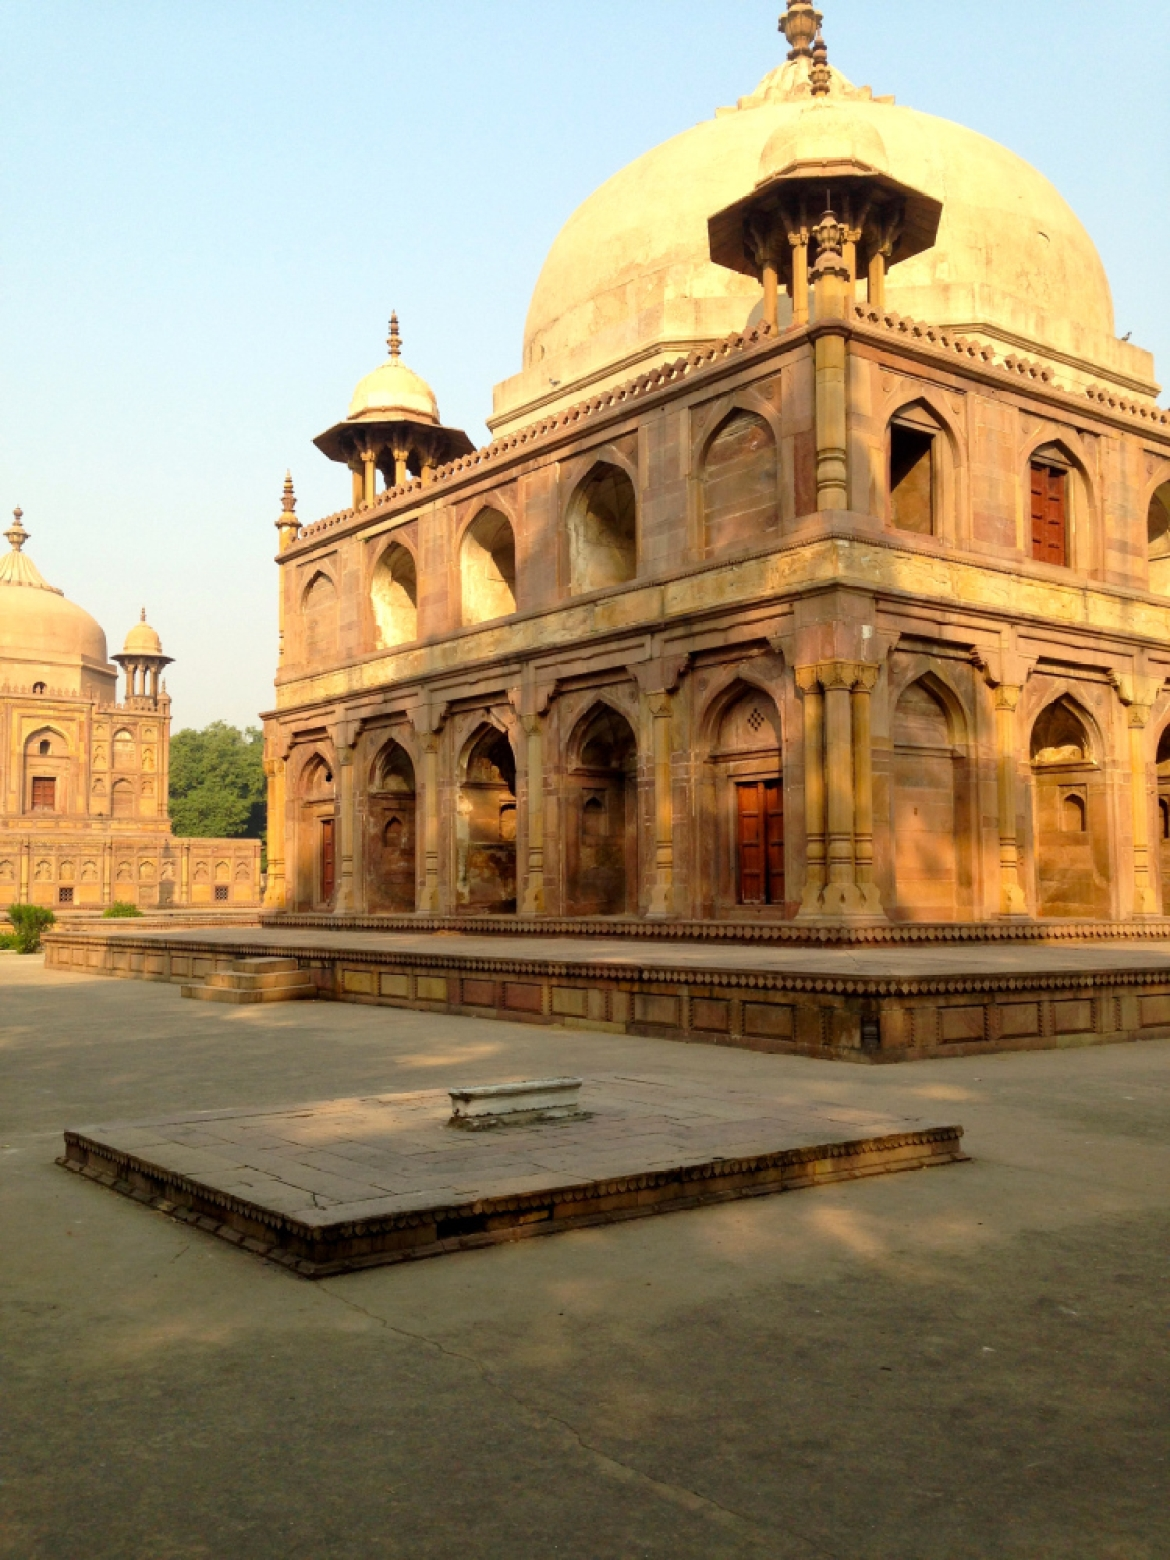 A recent photograph of the Khusrau Bagh